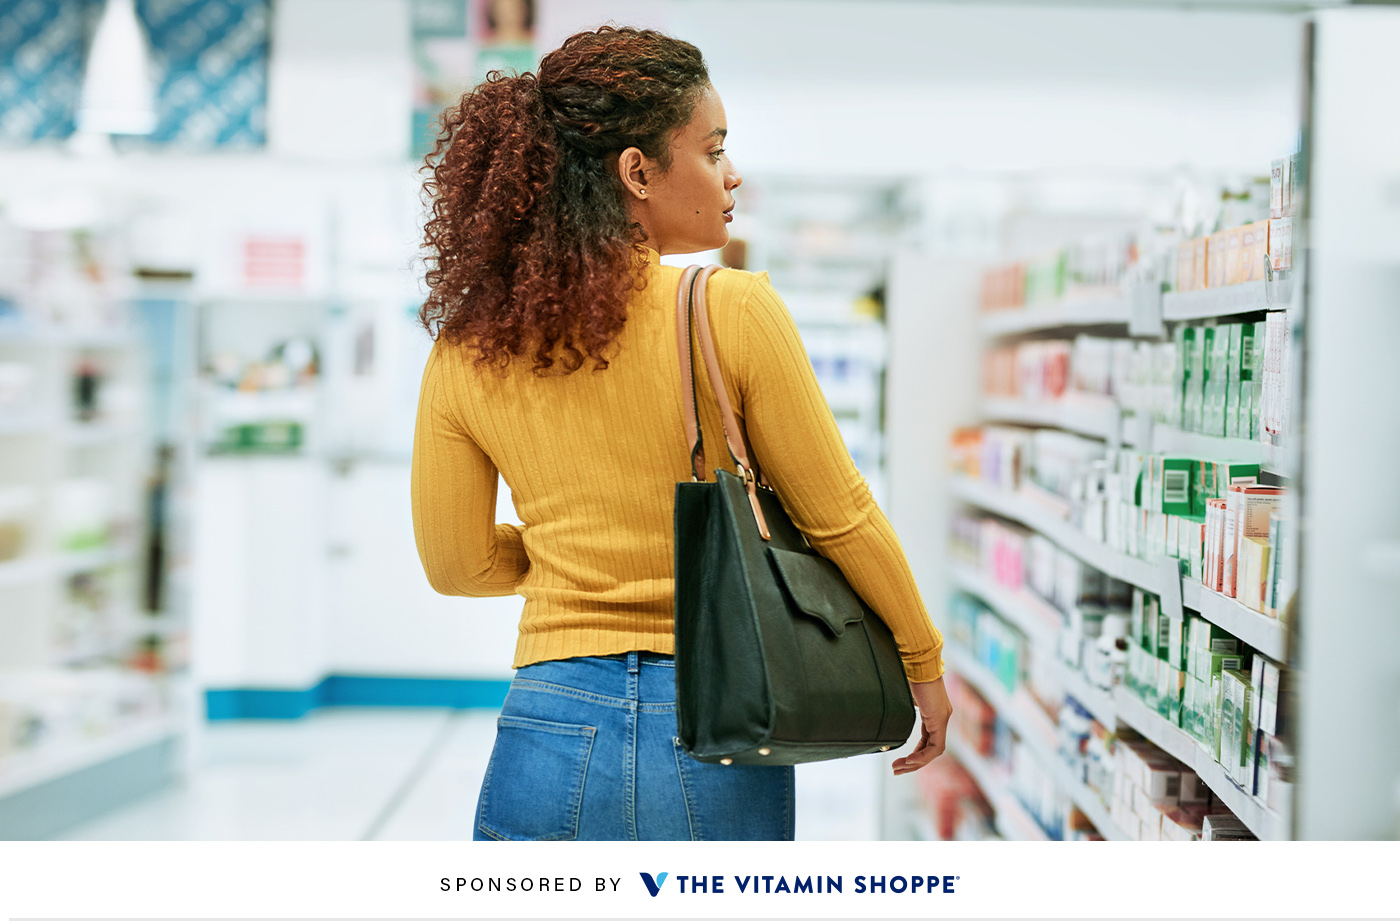 4 Qualities to Look for When Shopping for Immune-Support Supplements, According to an RD